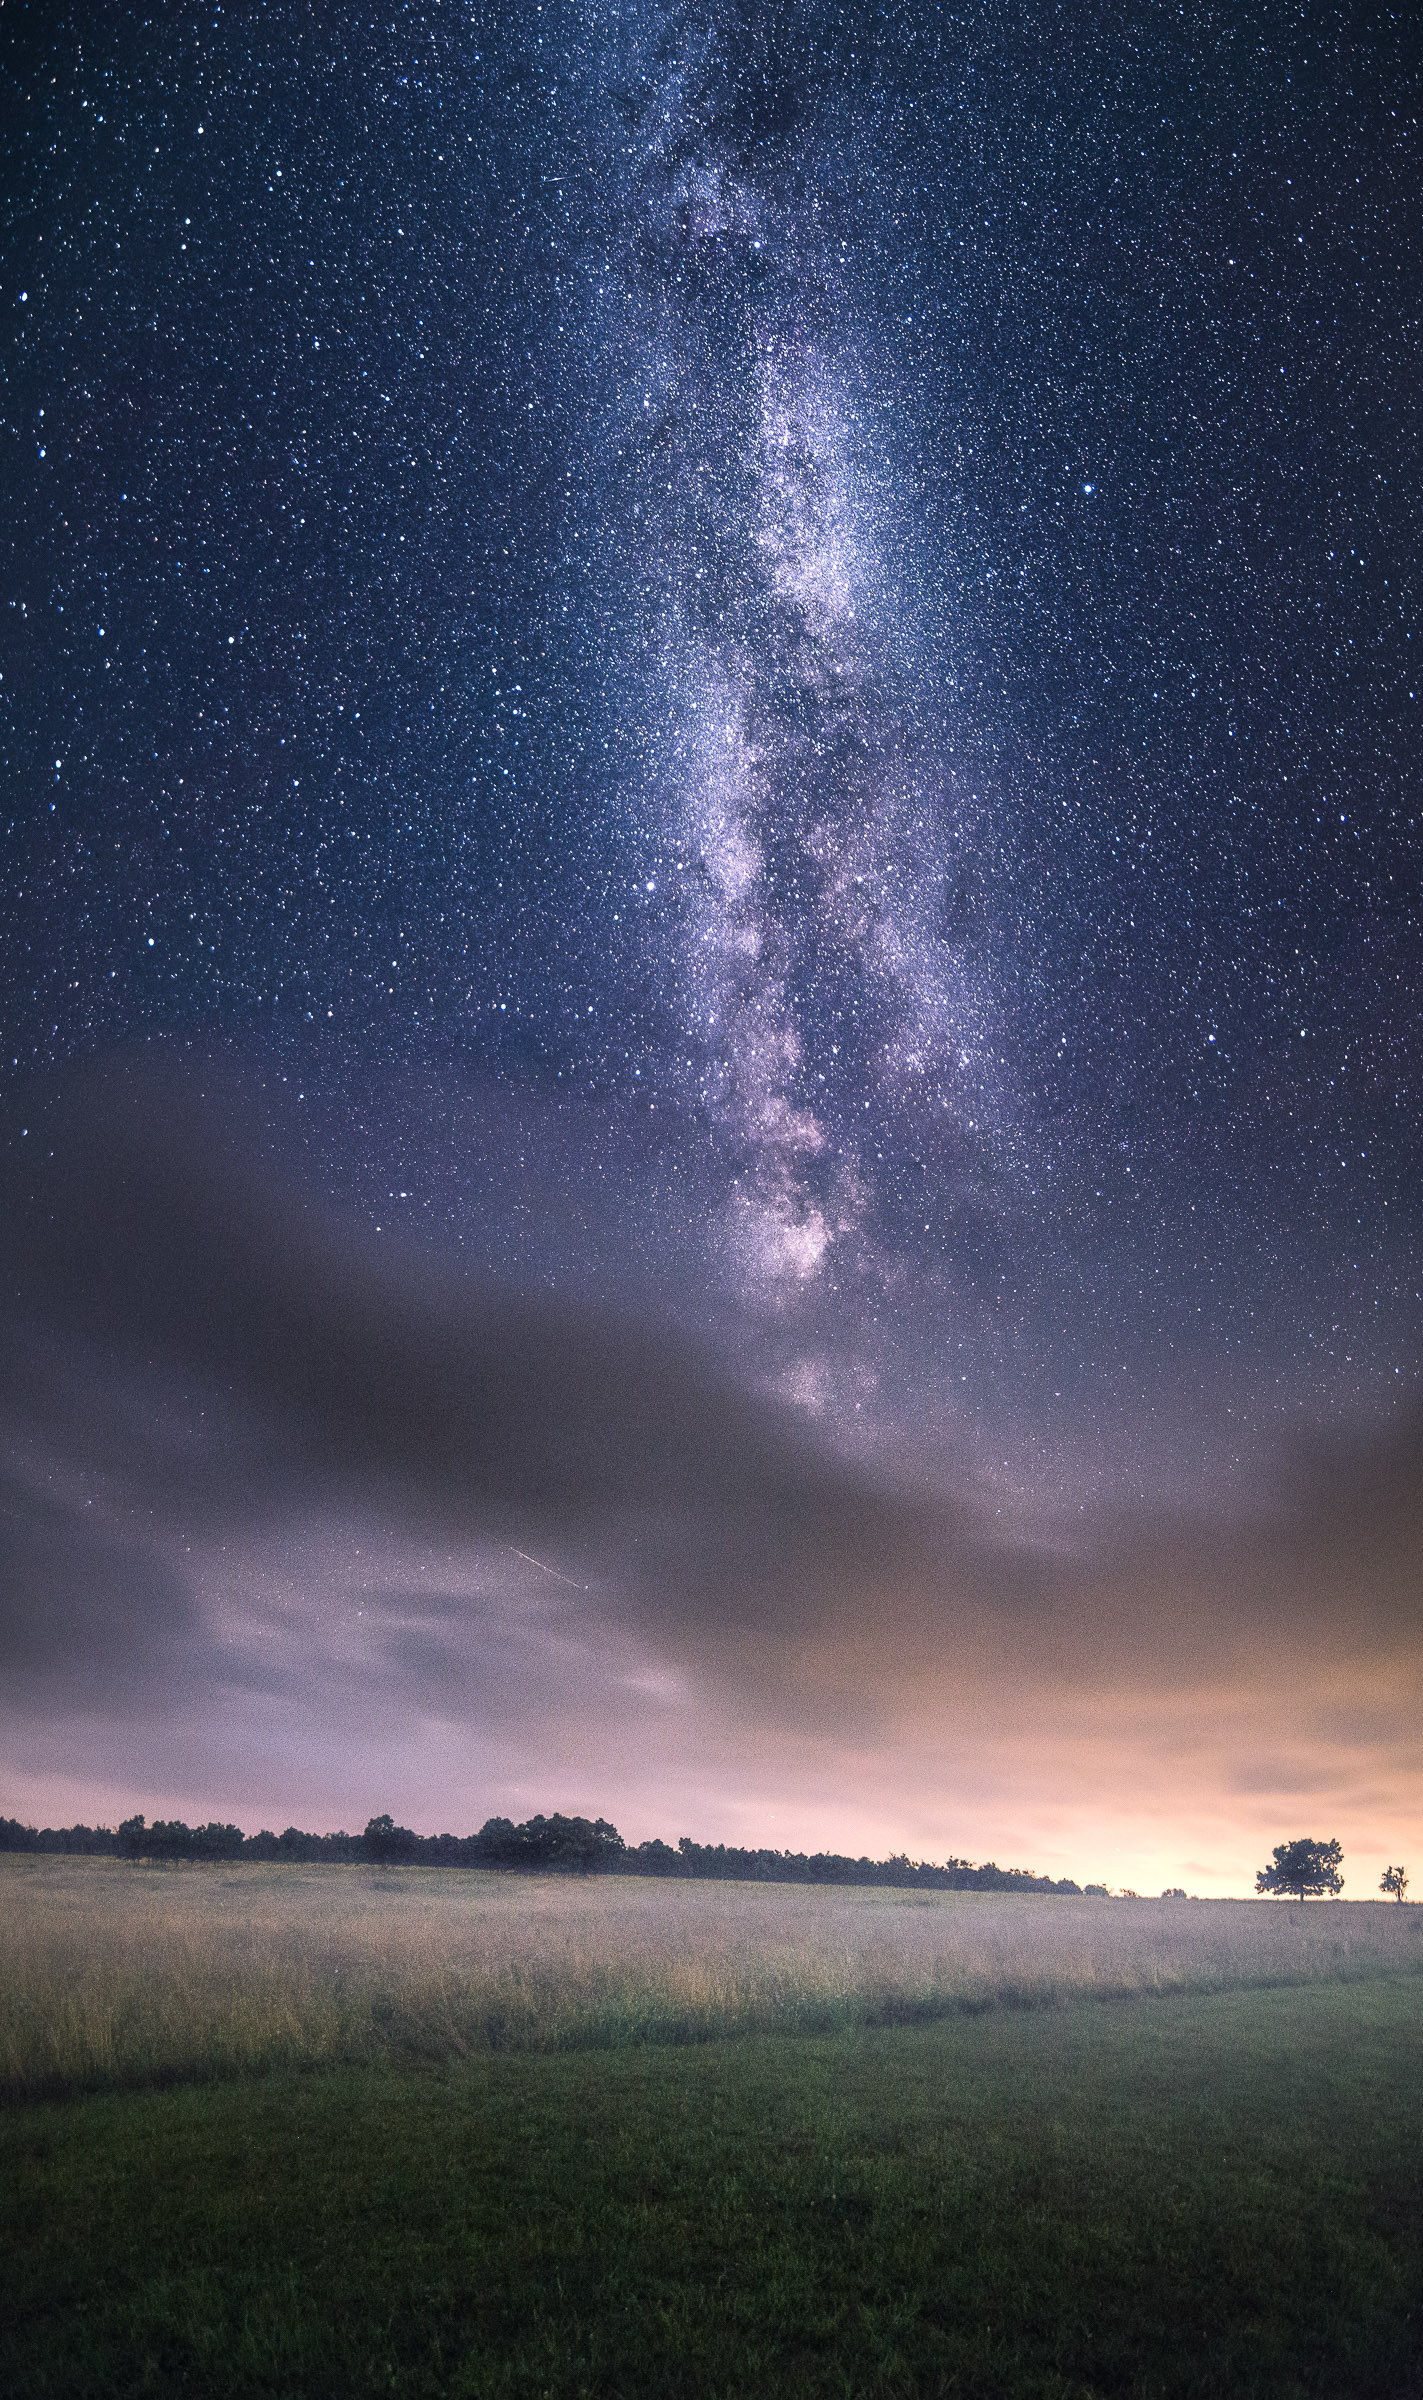 Milky Way Meets Meadow in Skywatcher Photo